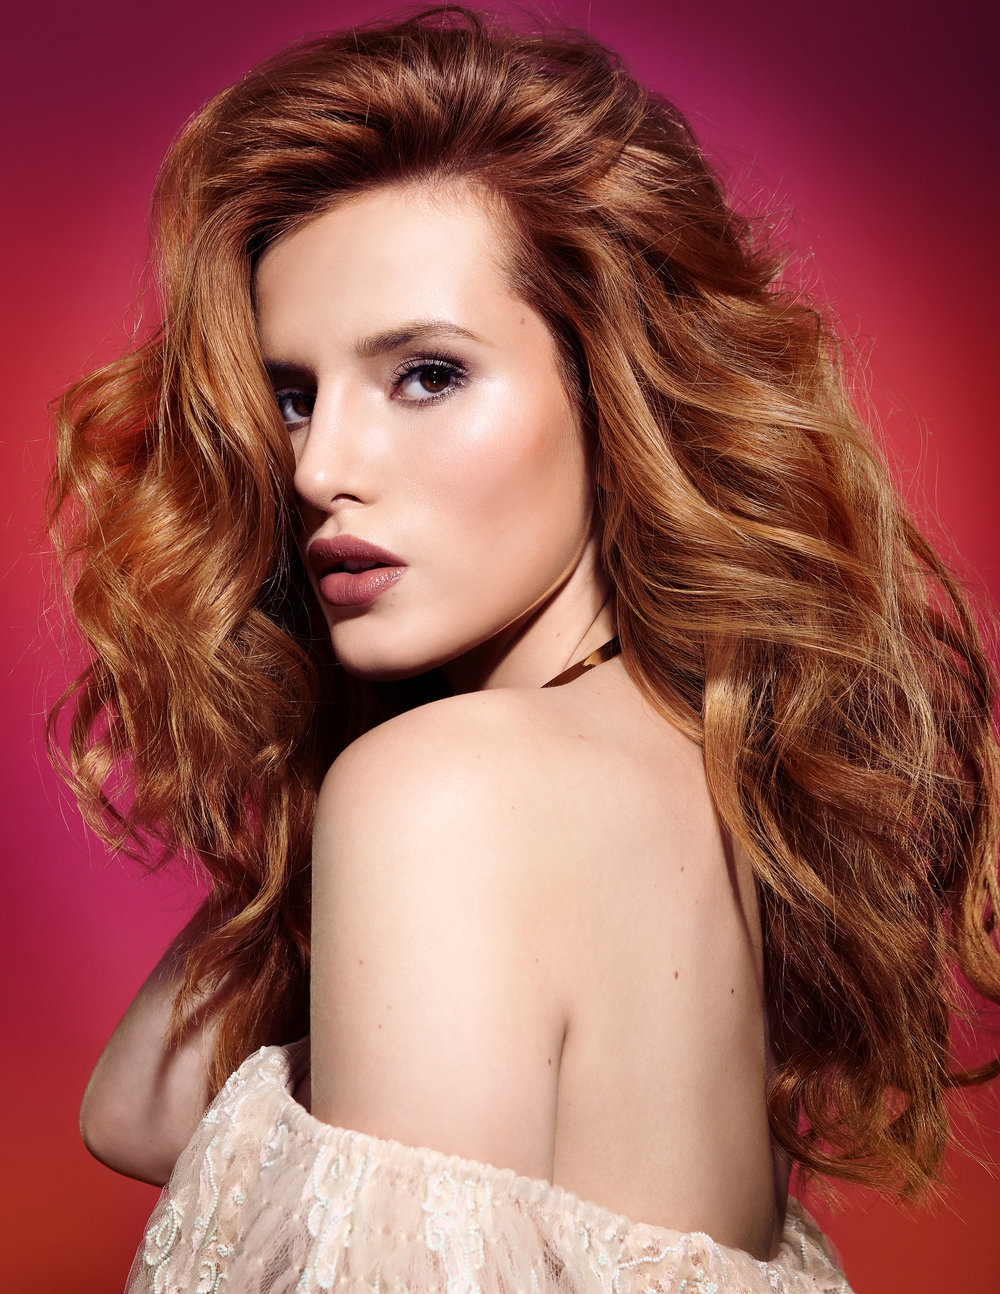 Bella_Thorne-0092_wk_High_Res.jpg